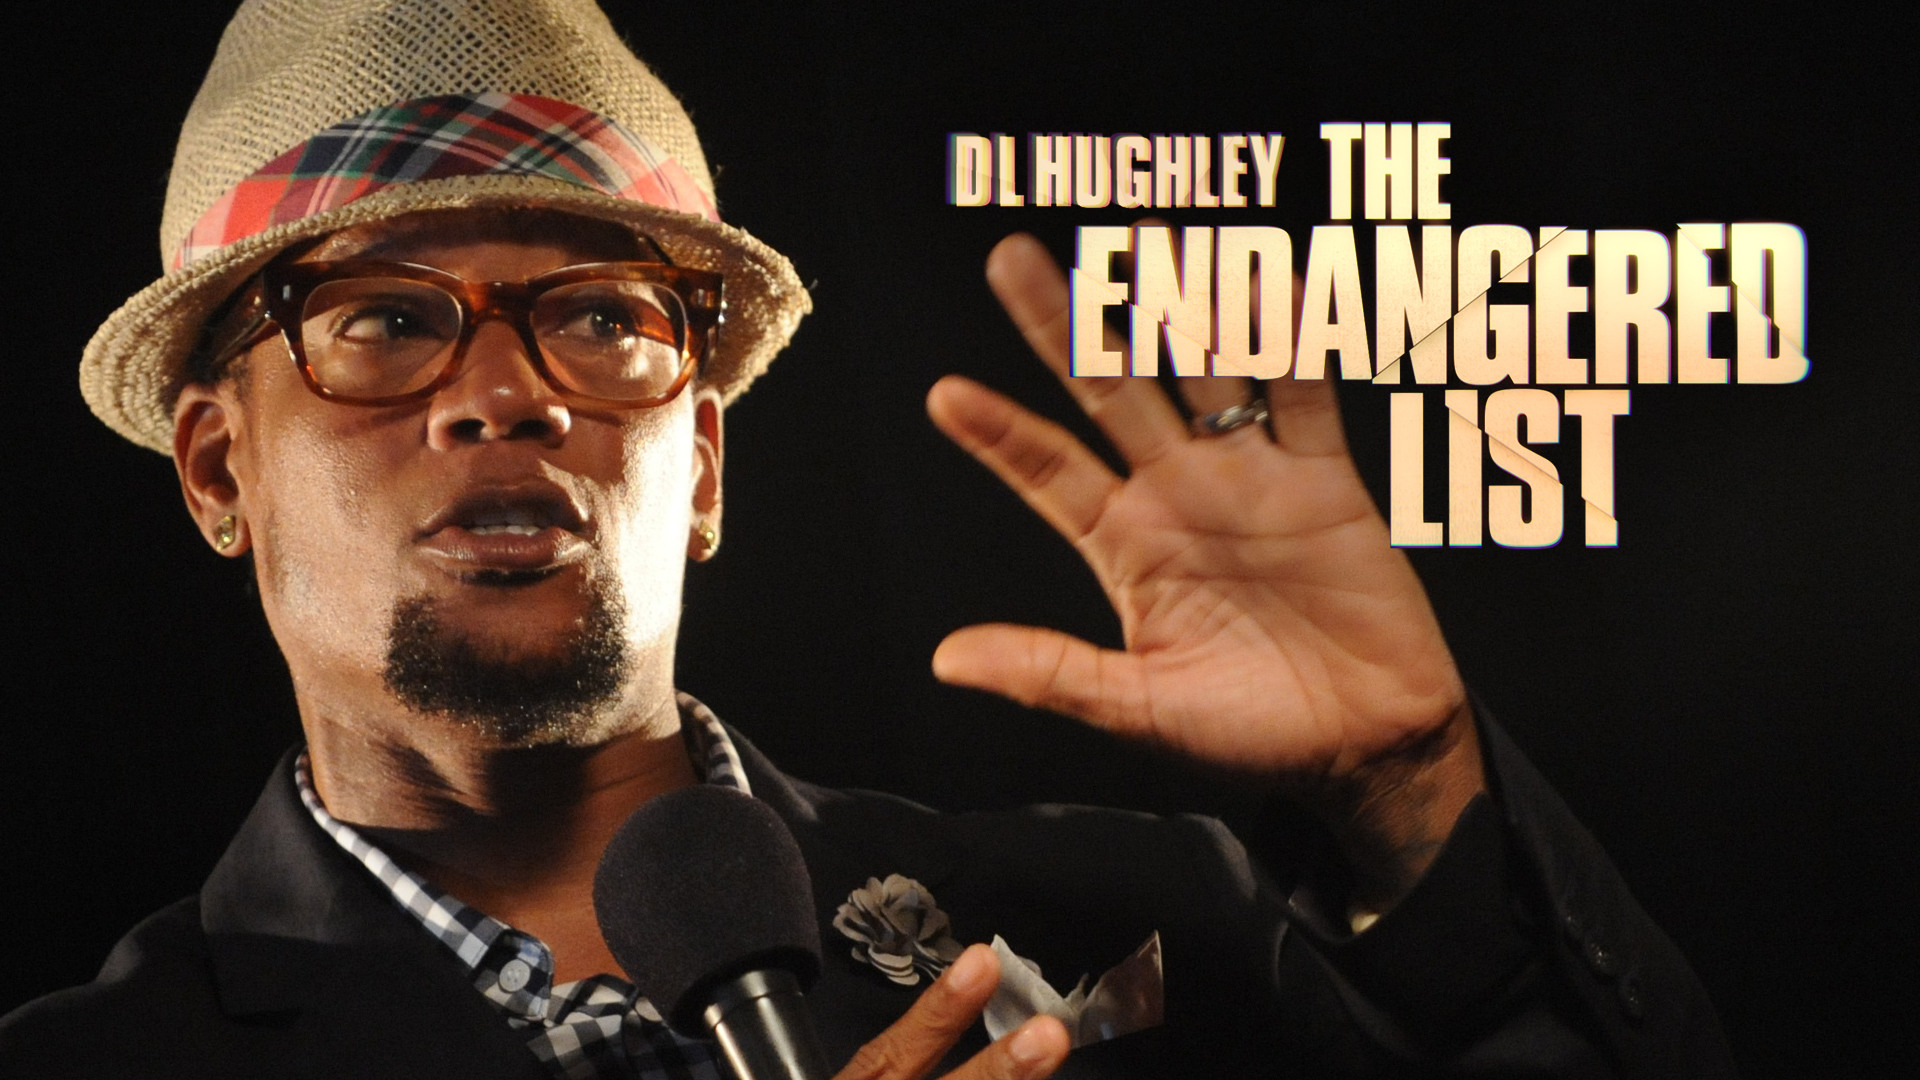 D.L. HUGHLEY - THE ENDANGERED LIST